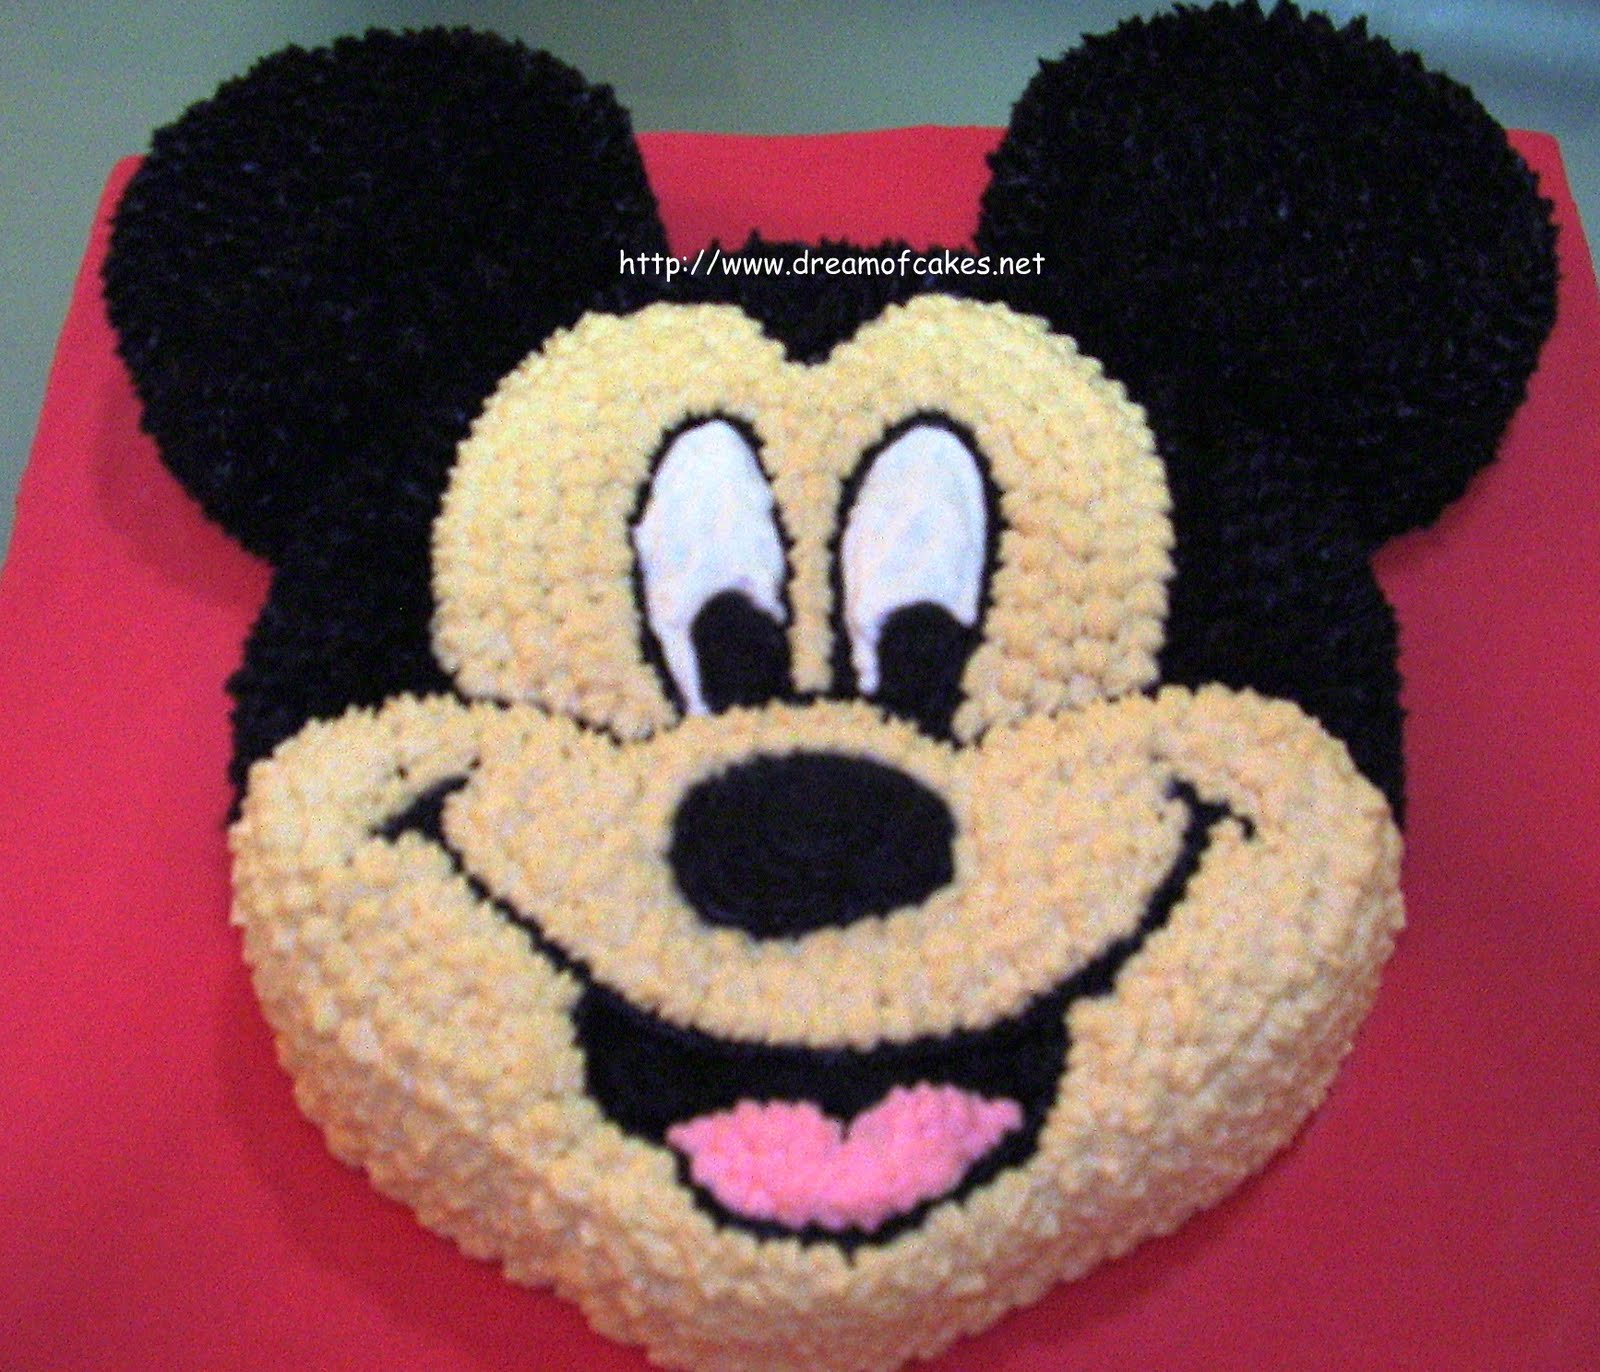 How To Decorate A Wilton Mickey Mouse Cake